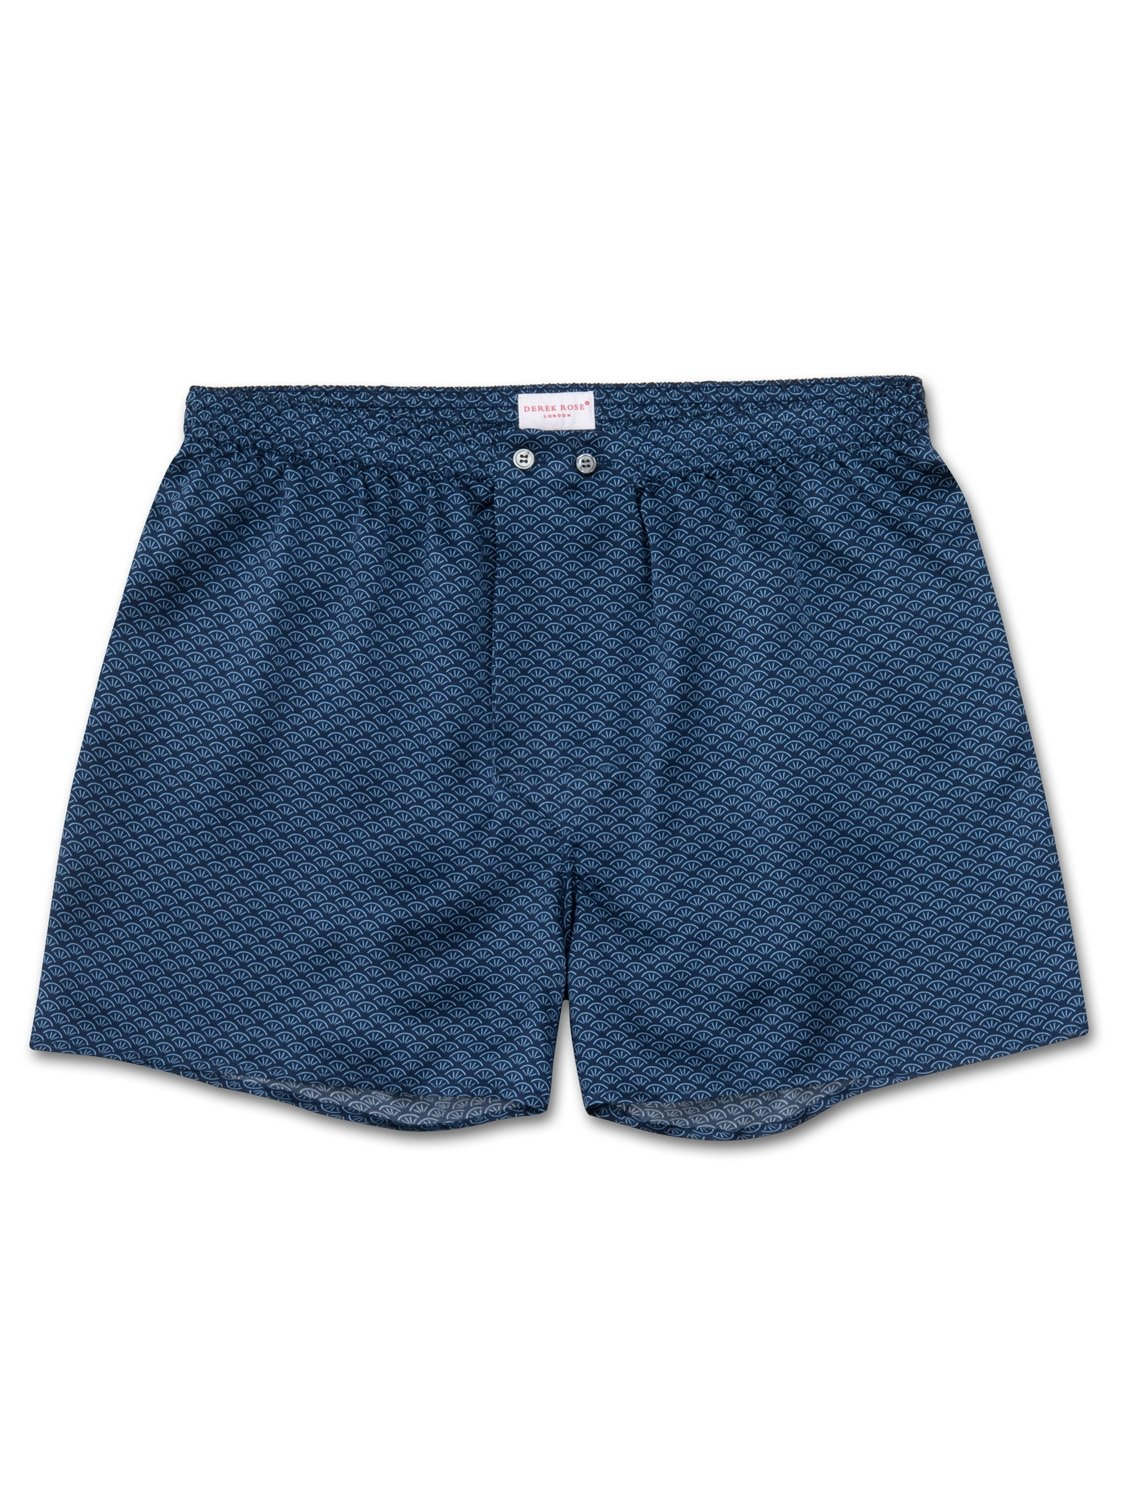 Men's Classic Fit Boxer Shorts Brindisi 26 Pure Silk Satin Navy